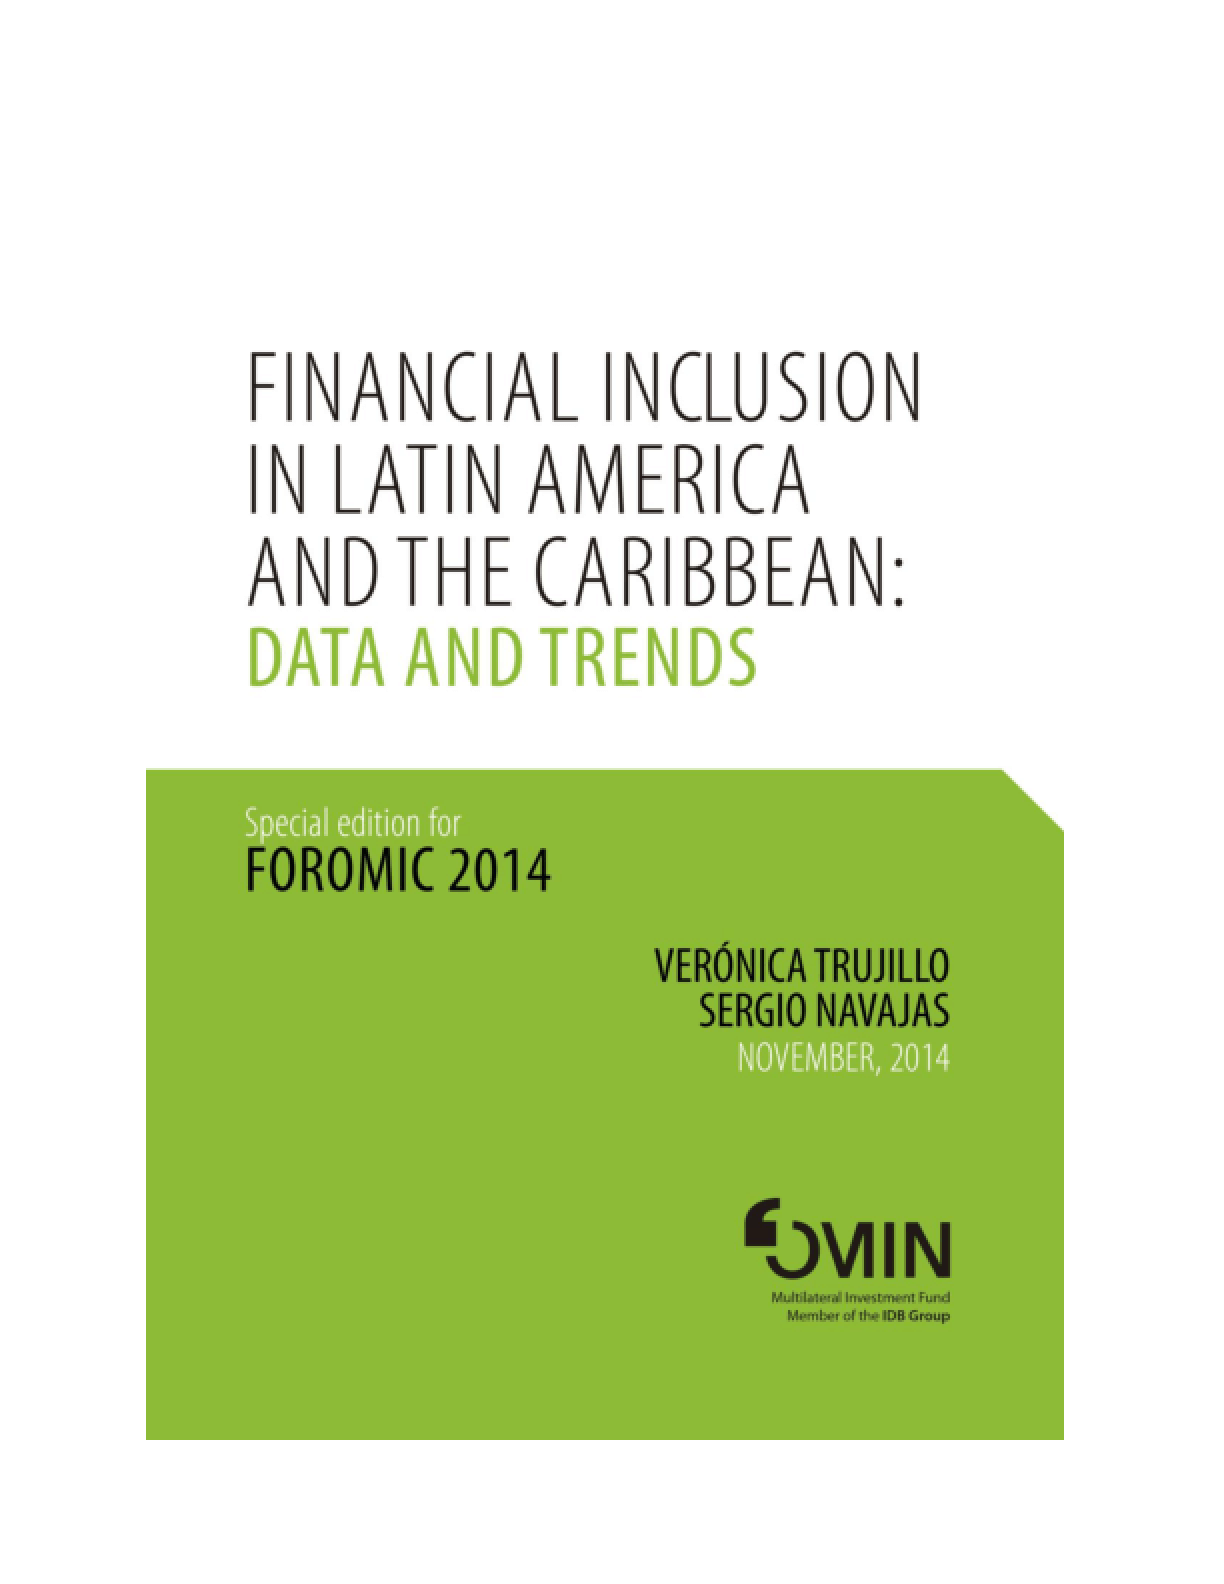 Financial Inclusion In Latin America and the Caribbean: Data and Trends